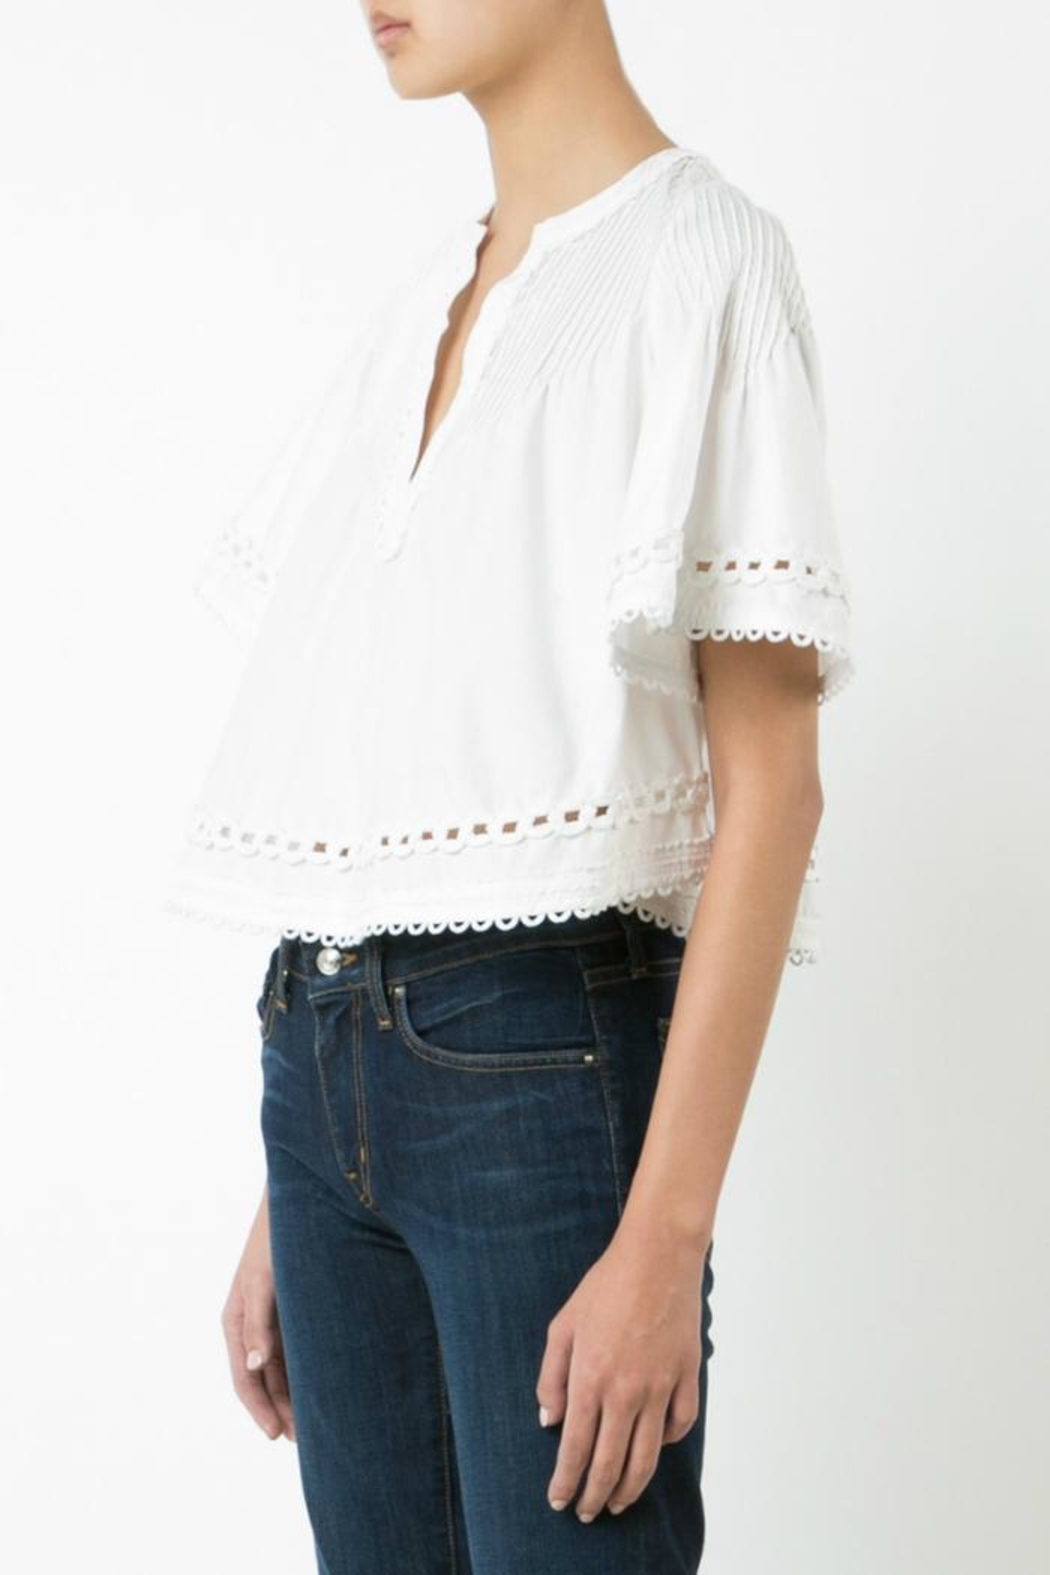 Derek Lam 10 Crosby Embroidered Pintuck Top - Main Image